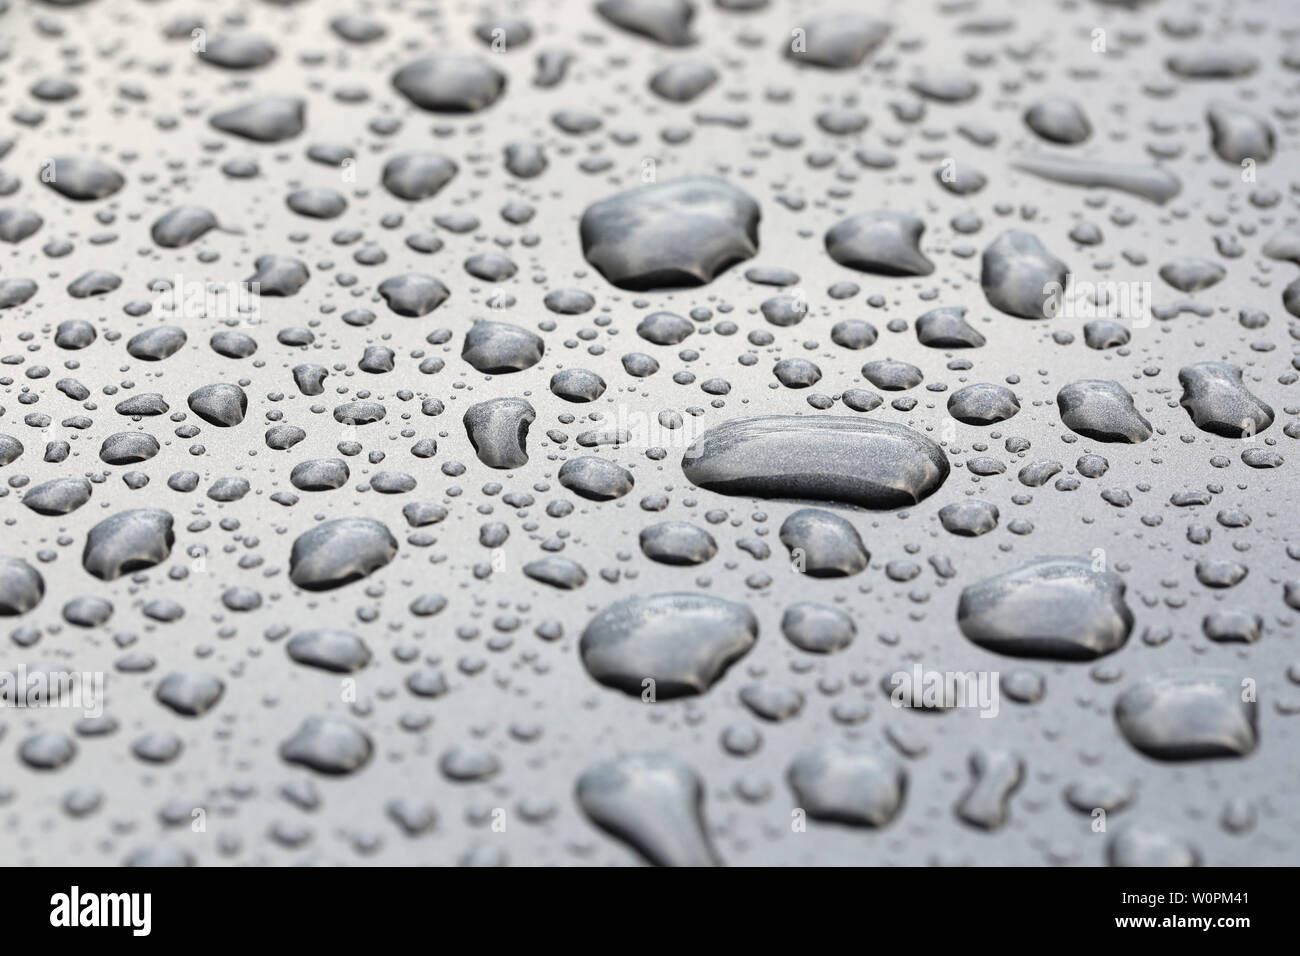 pattern of rain water droplets beading on a polished grey metal surface. Beads of rain sitting on a clean grey background - Stock Image